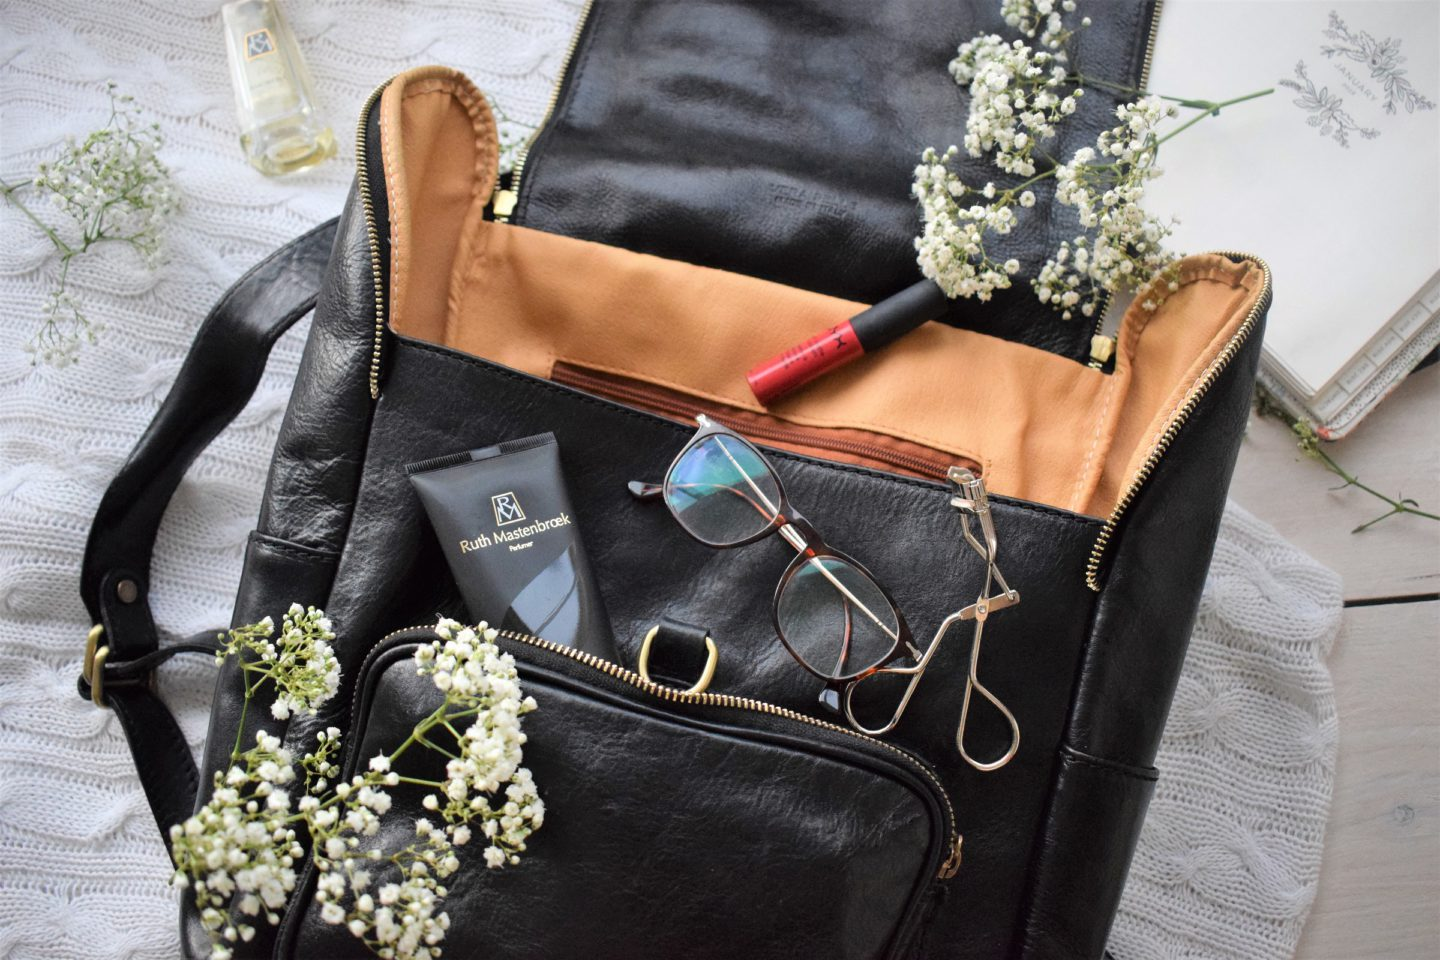 Leren rugzak, Venetië, shopping, what's in my bag?